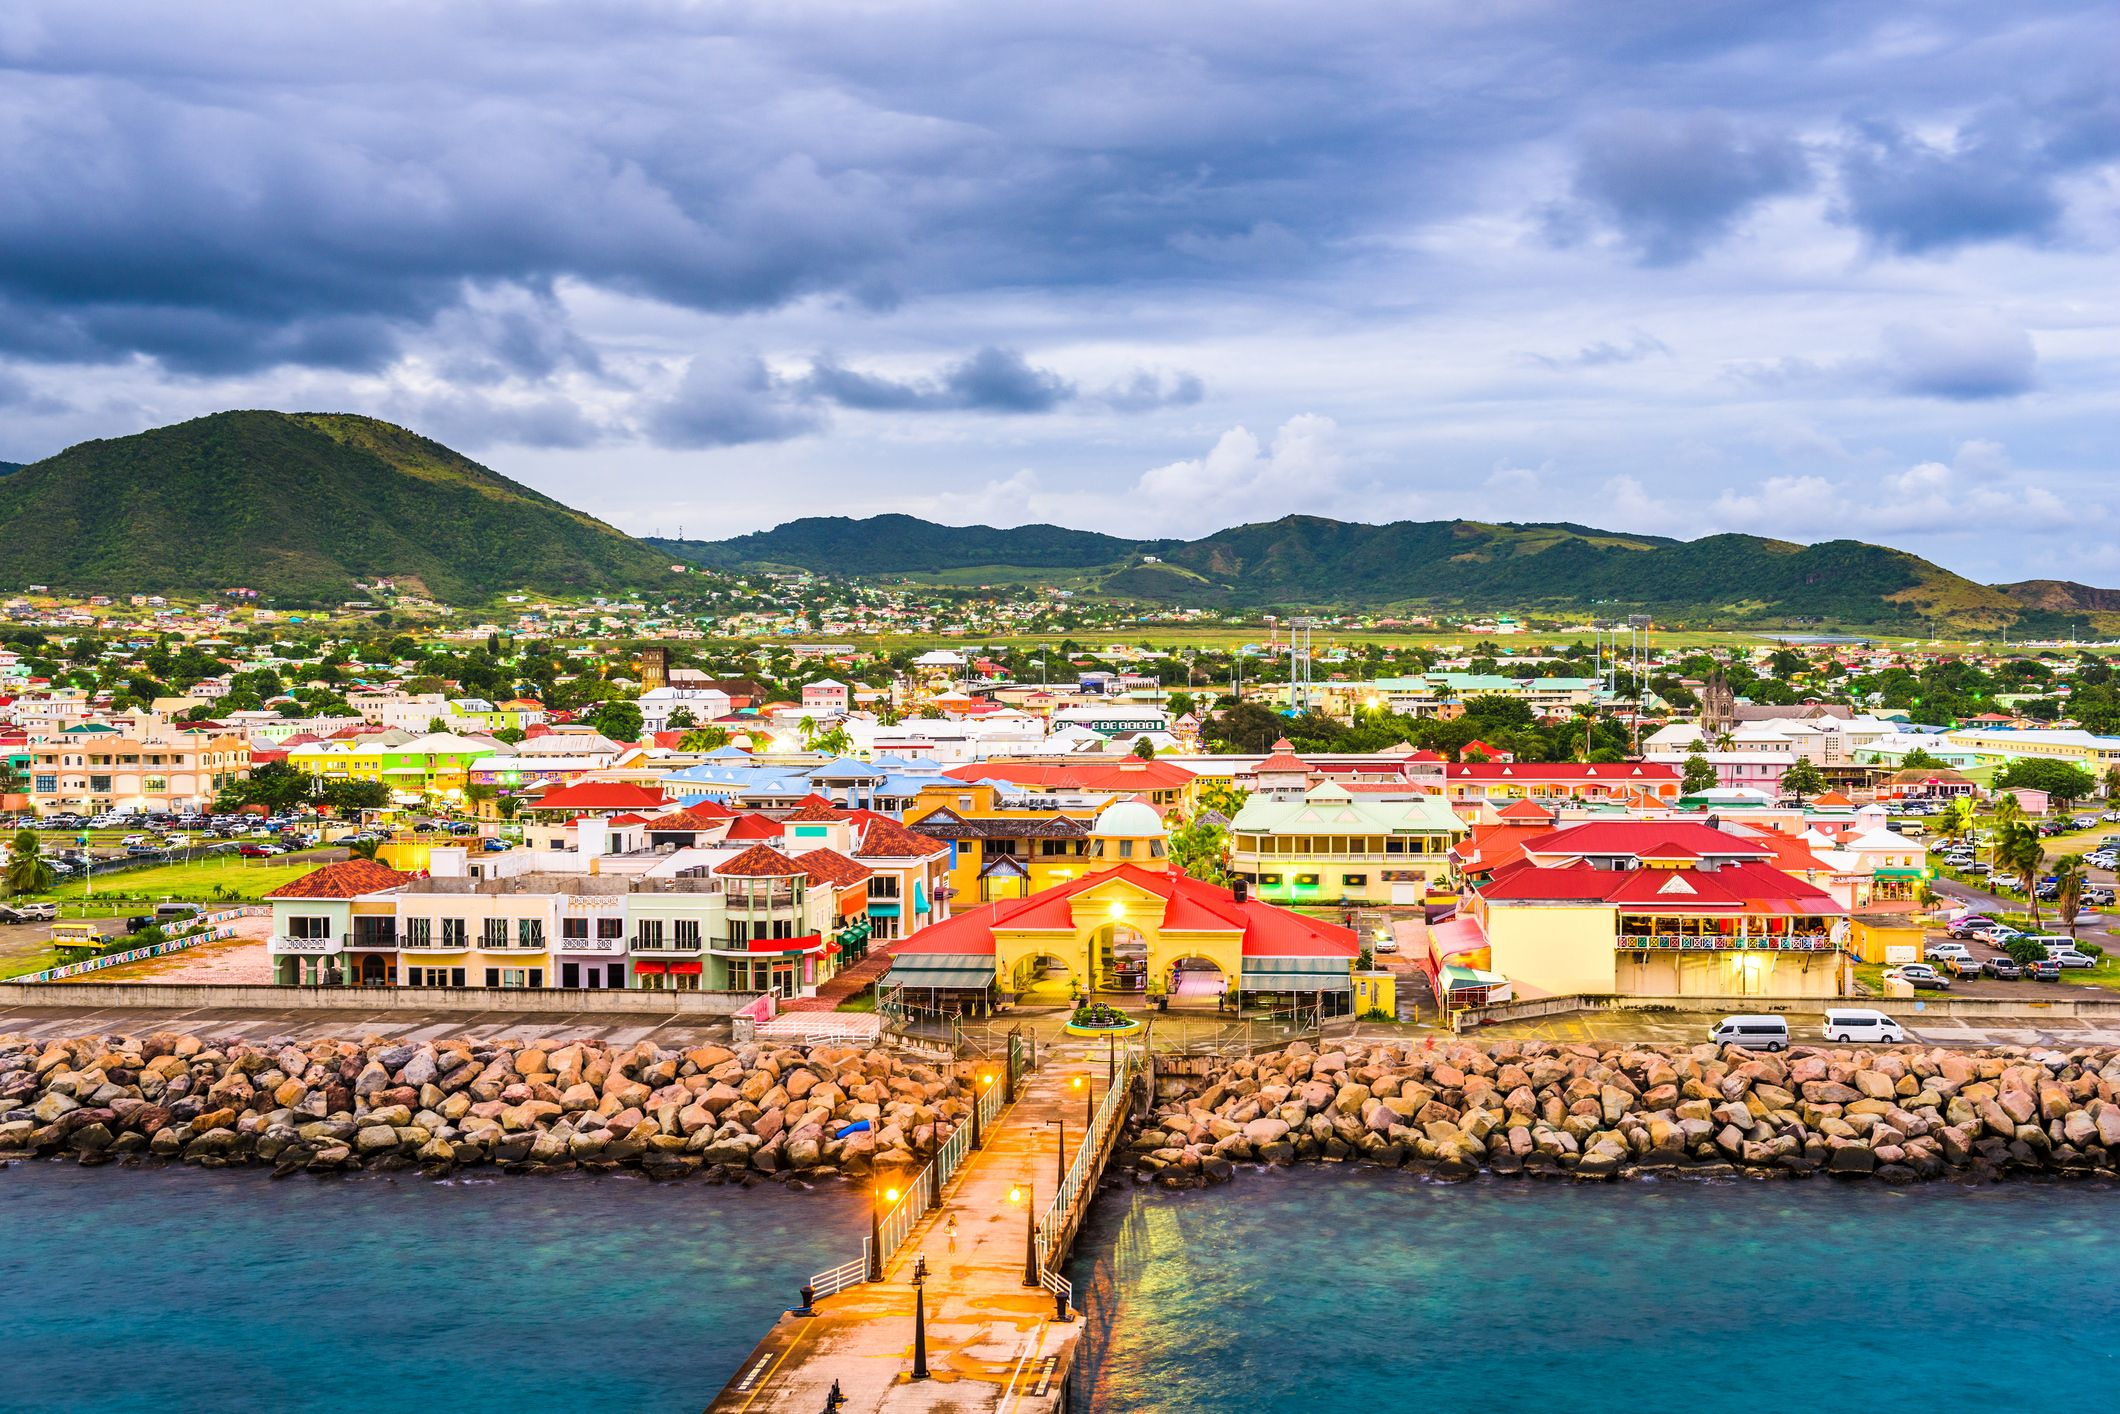 24 St Kitts and Nevis